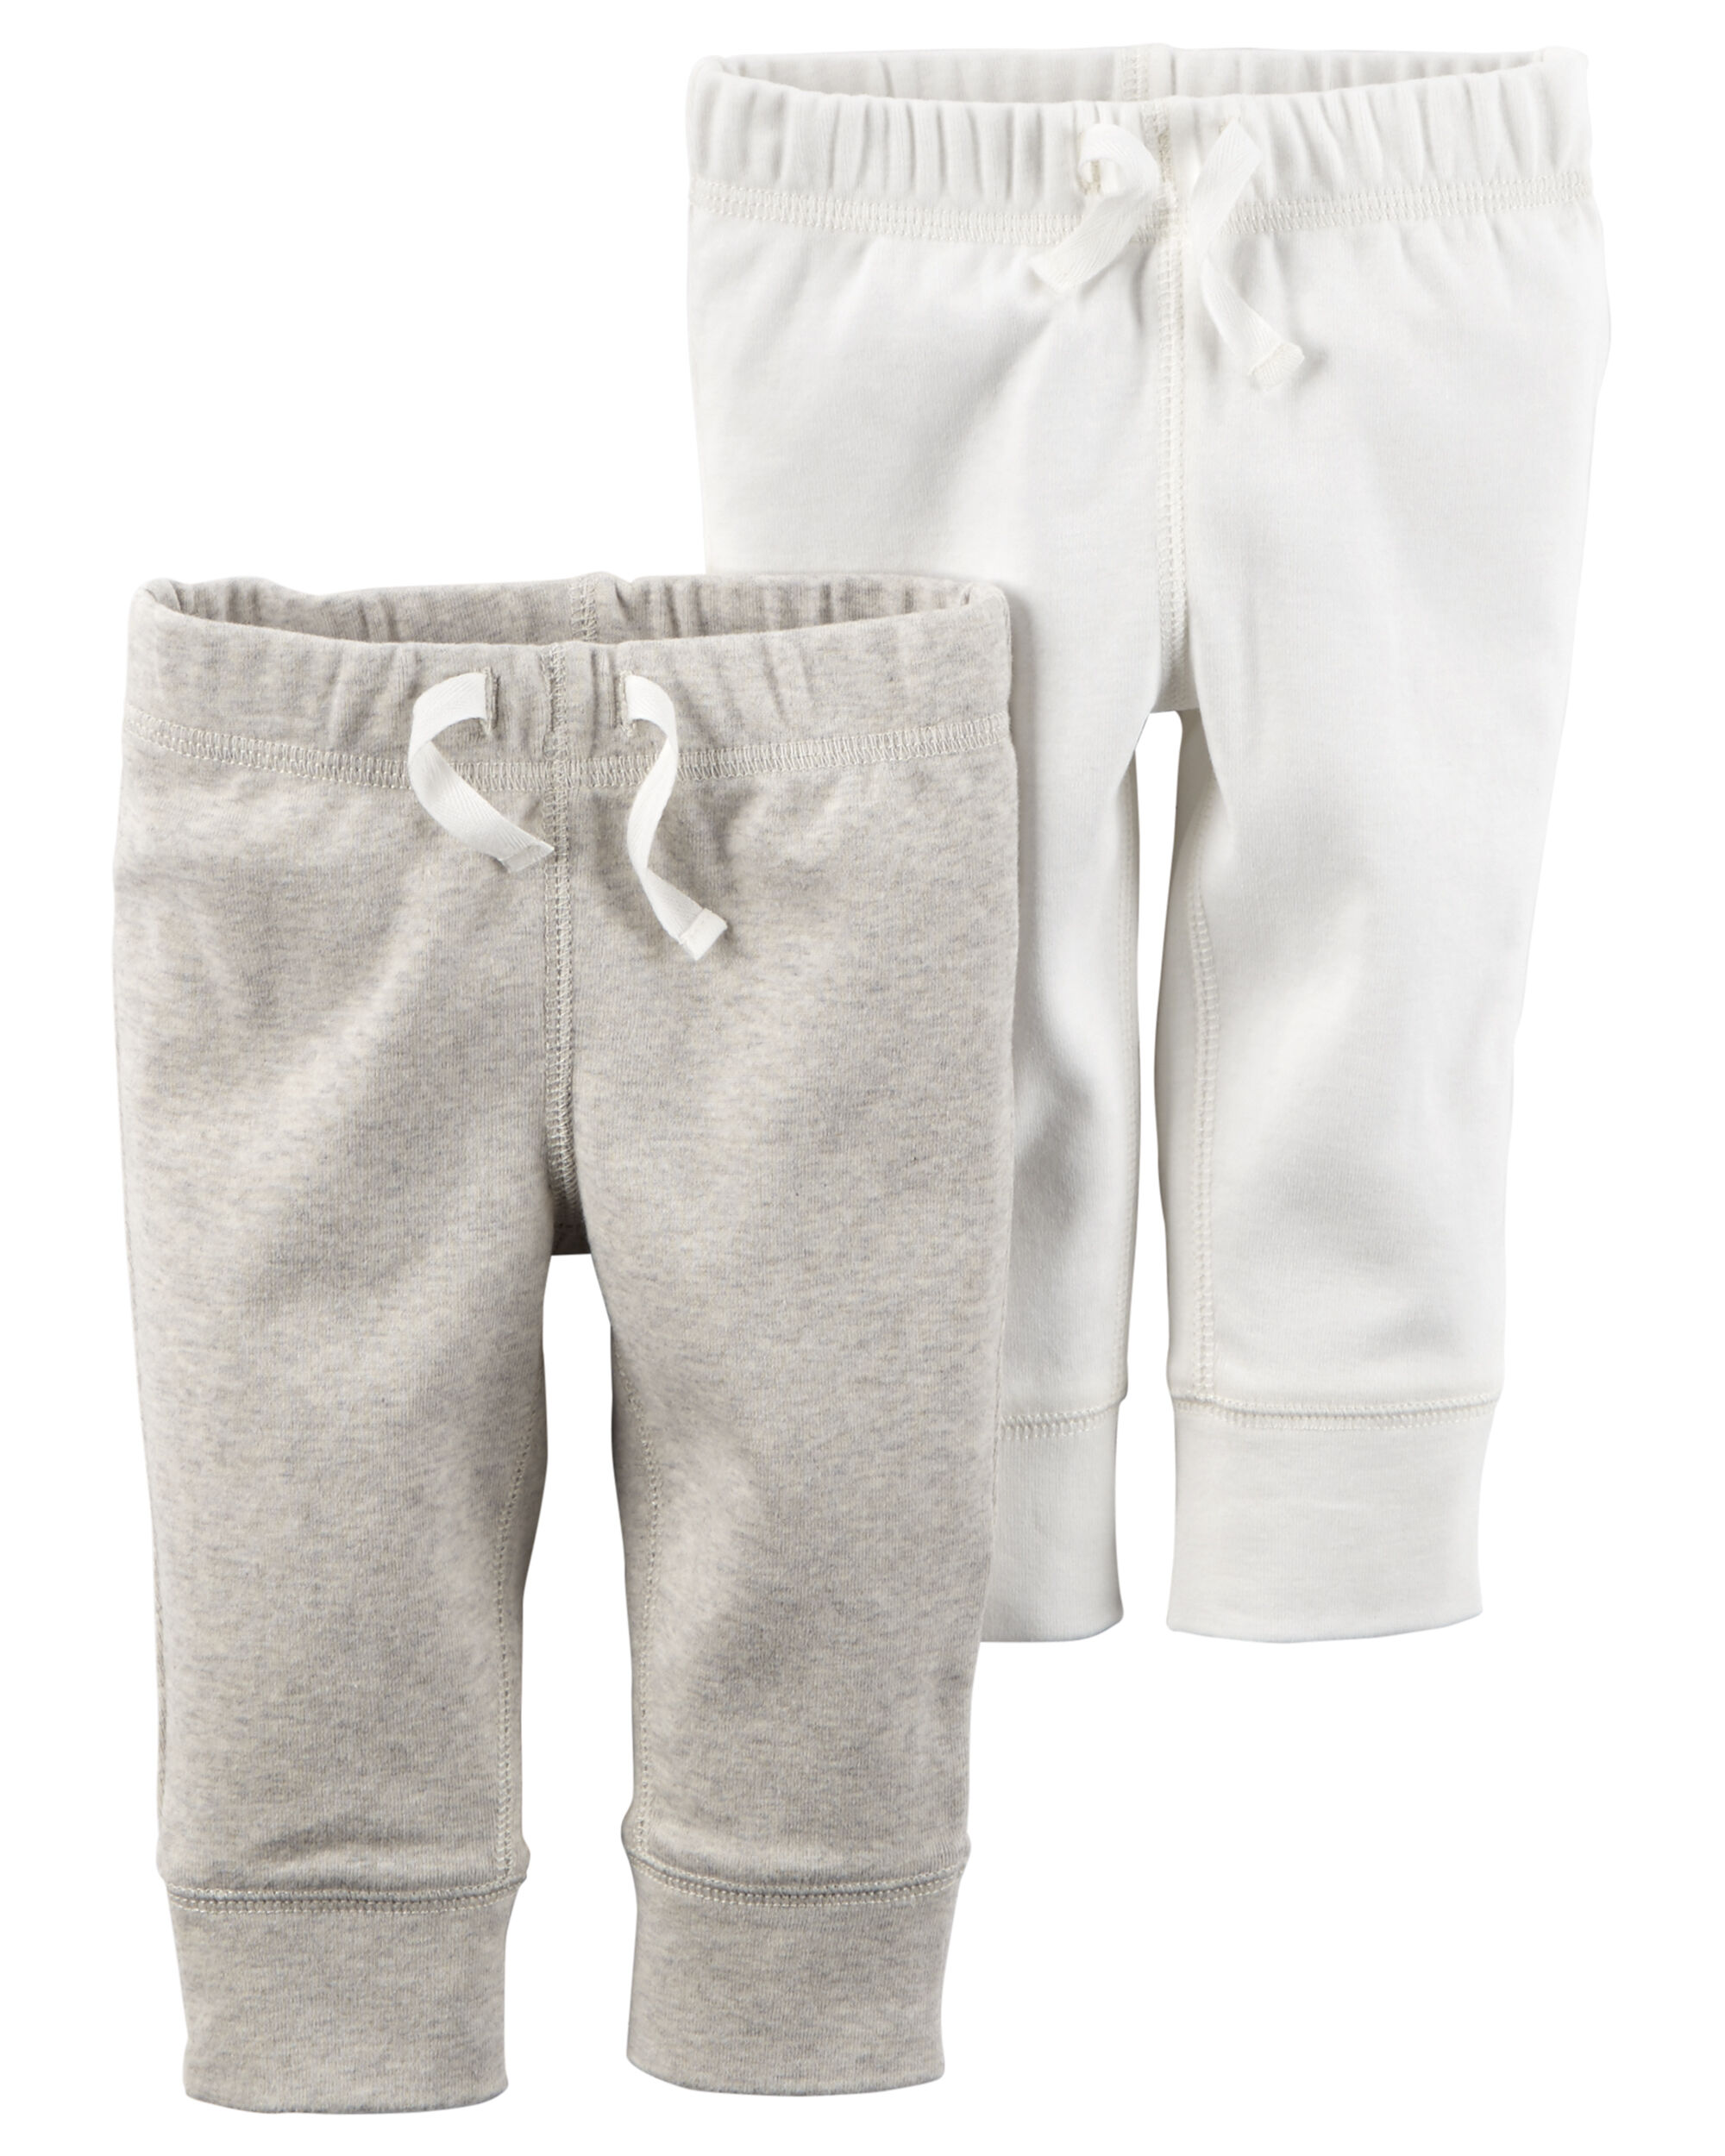 Carters Baby Carters 2 Pack Pants